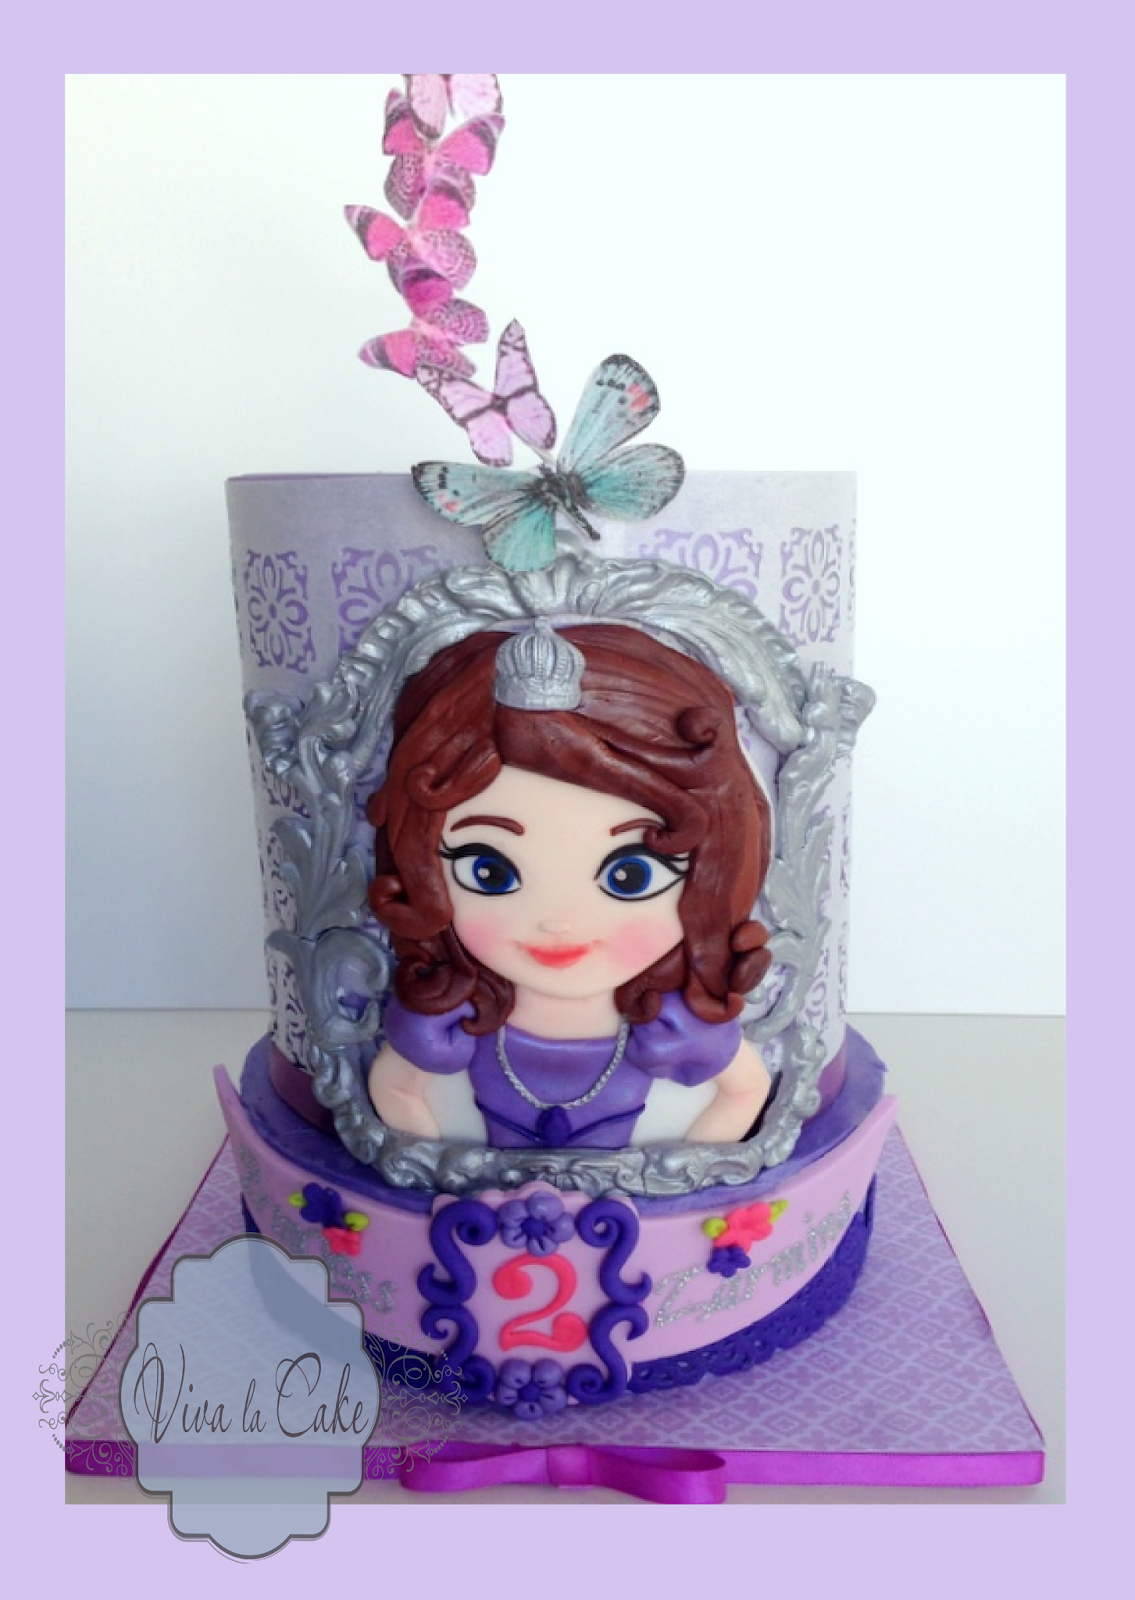 Cake Images Of Sofia The First : Viva La Cake I Blog: September 2013